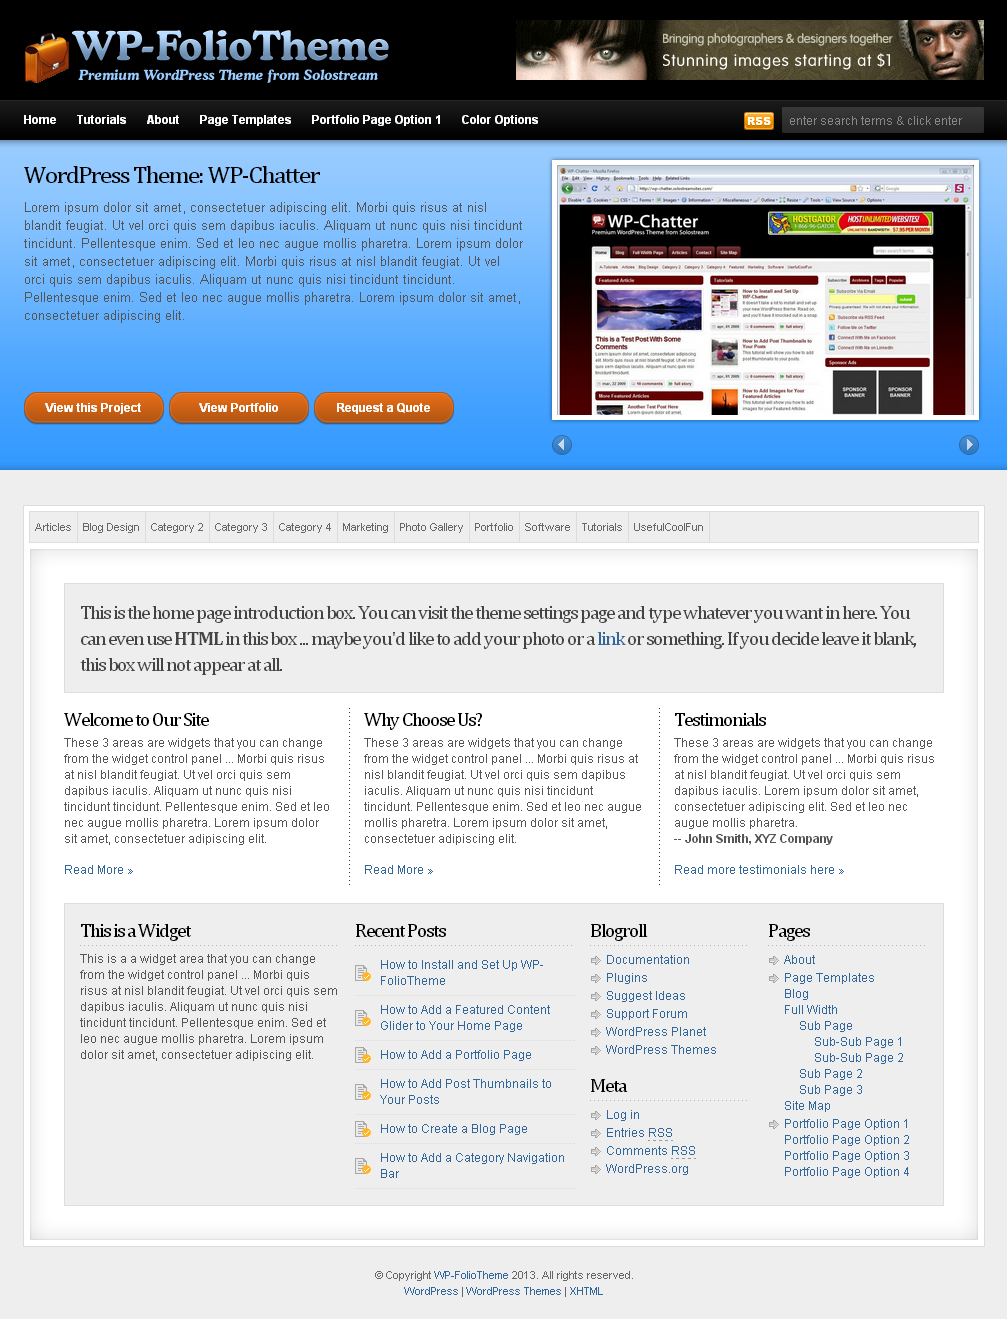 WP FolioTheme